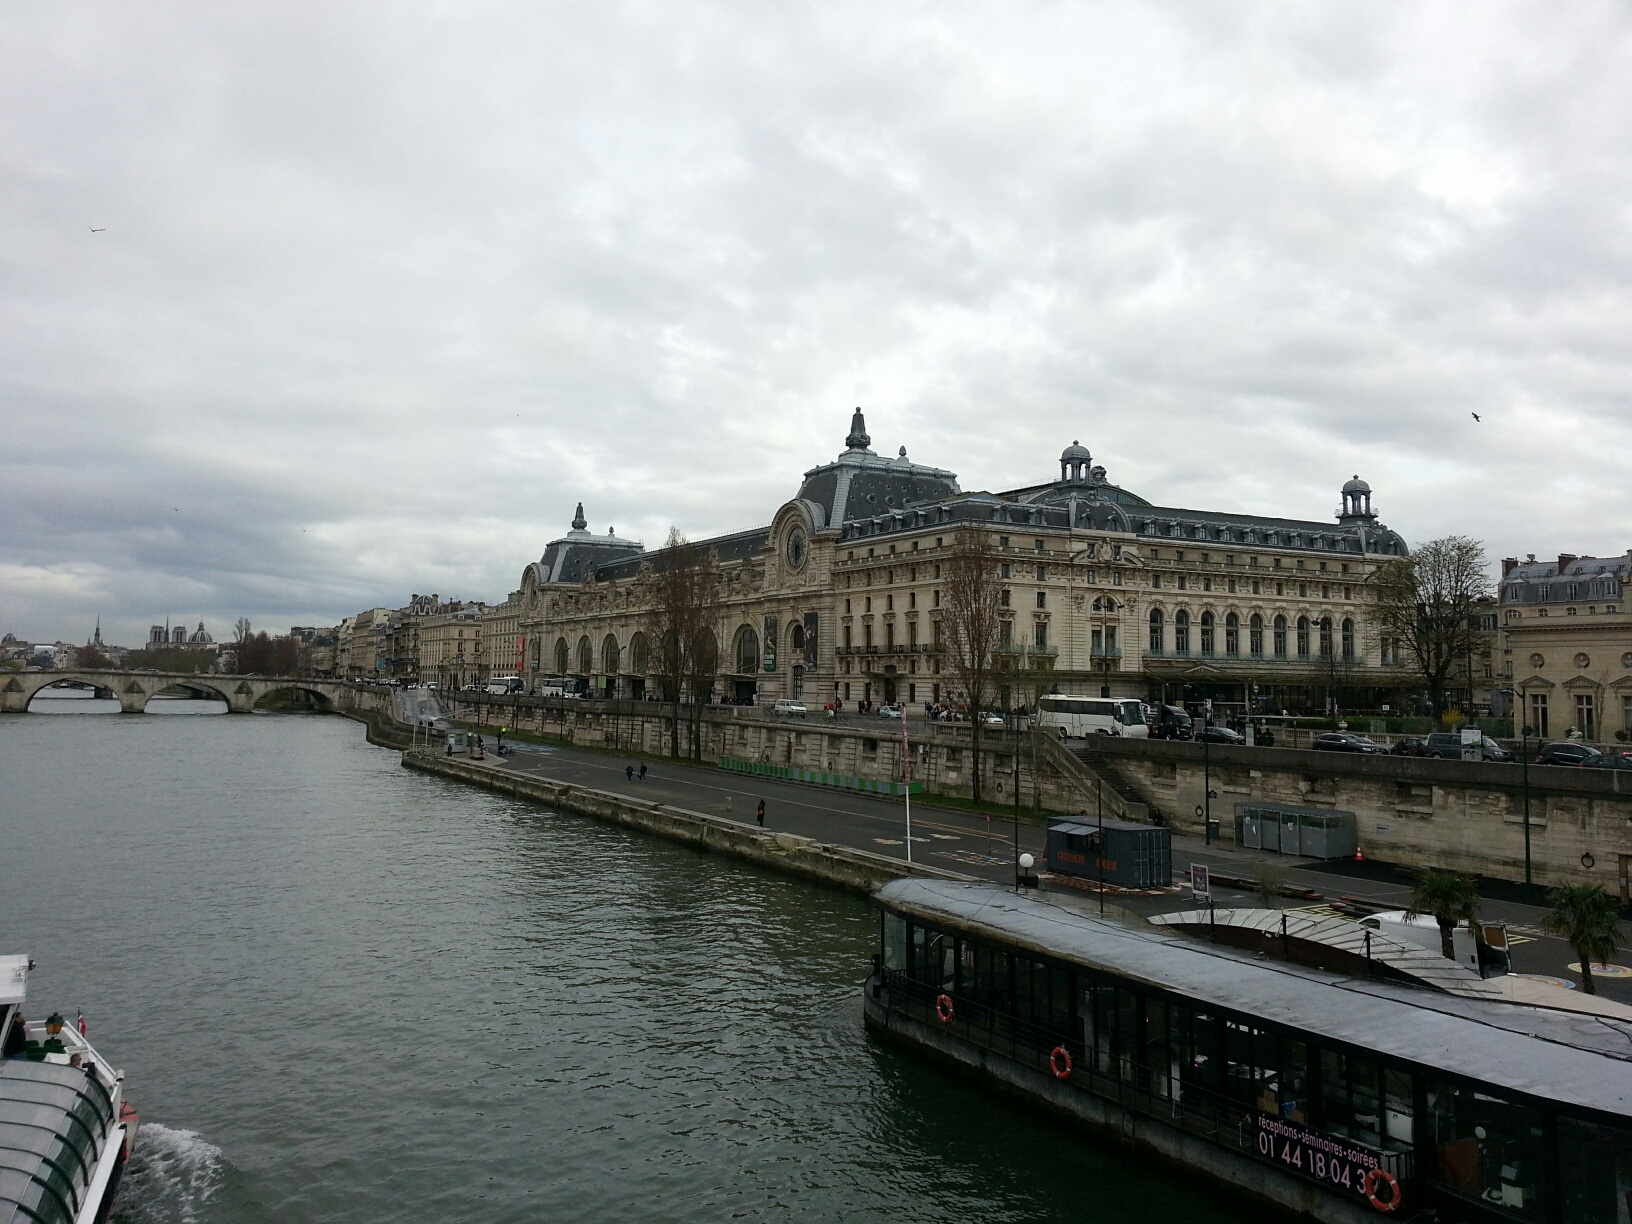 Musee d'Orsay and the Seine